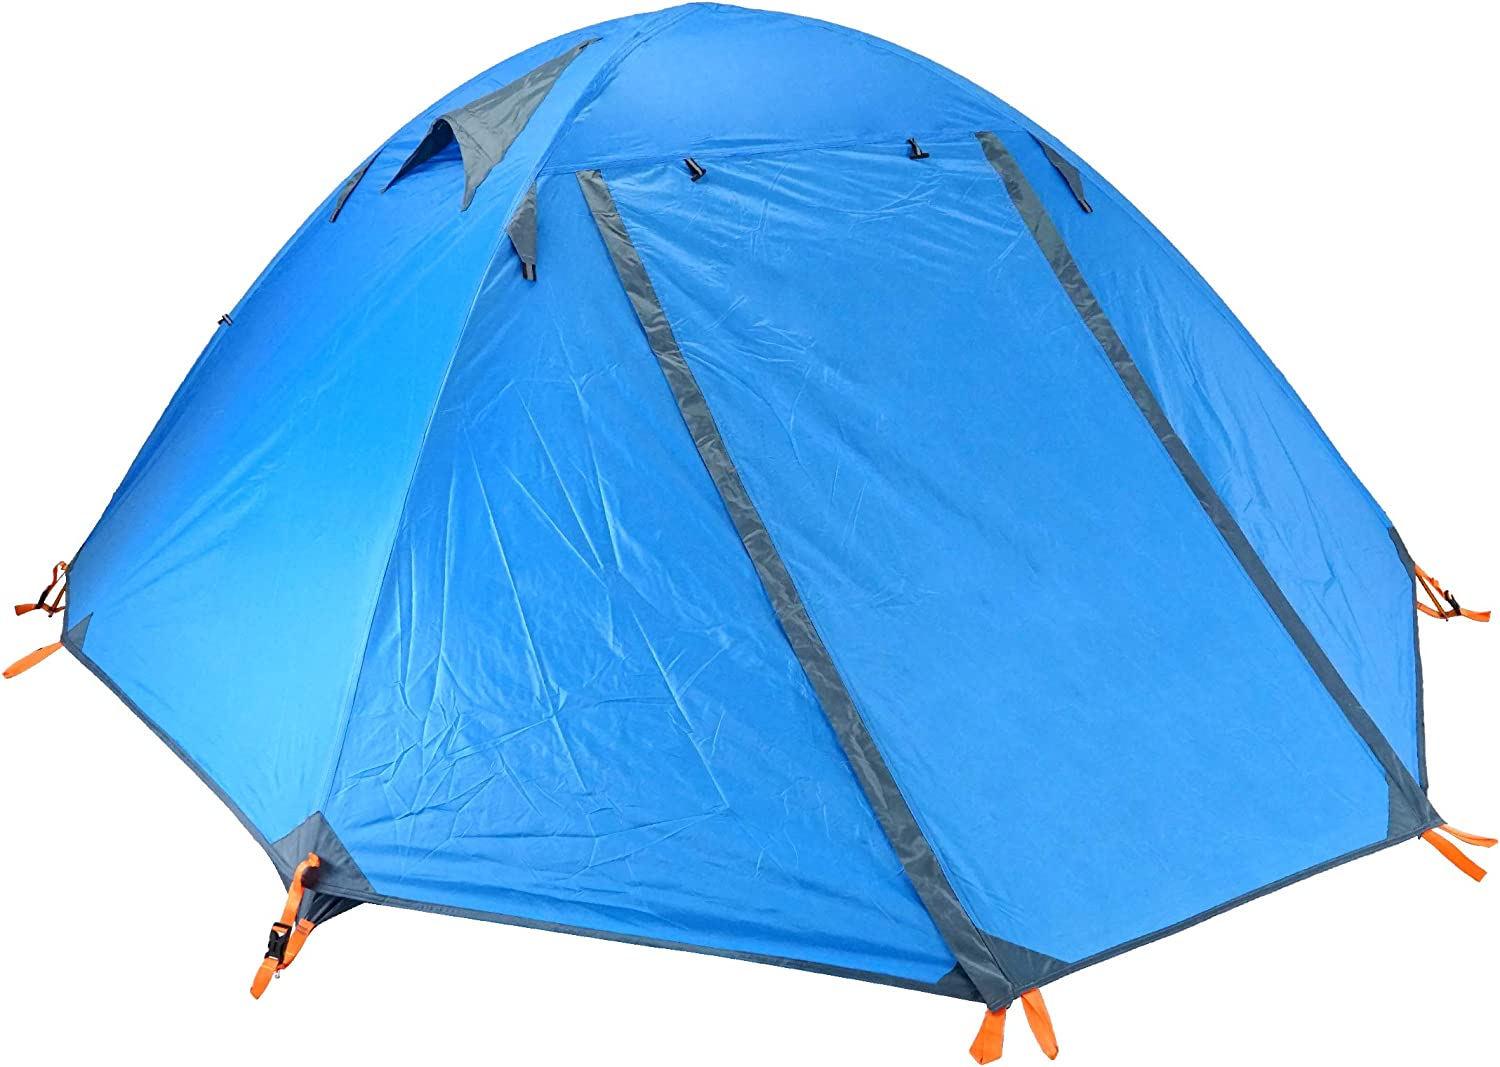 TRIWONDER Camping Tent 1 2 3 Portland Mall Raleigh Mall 4 Person Season for Bac Dome